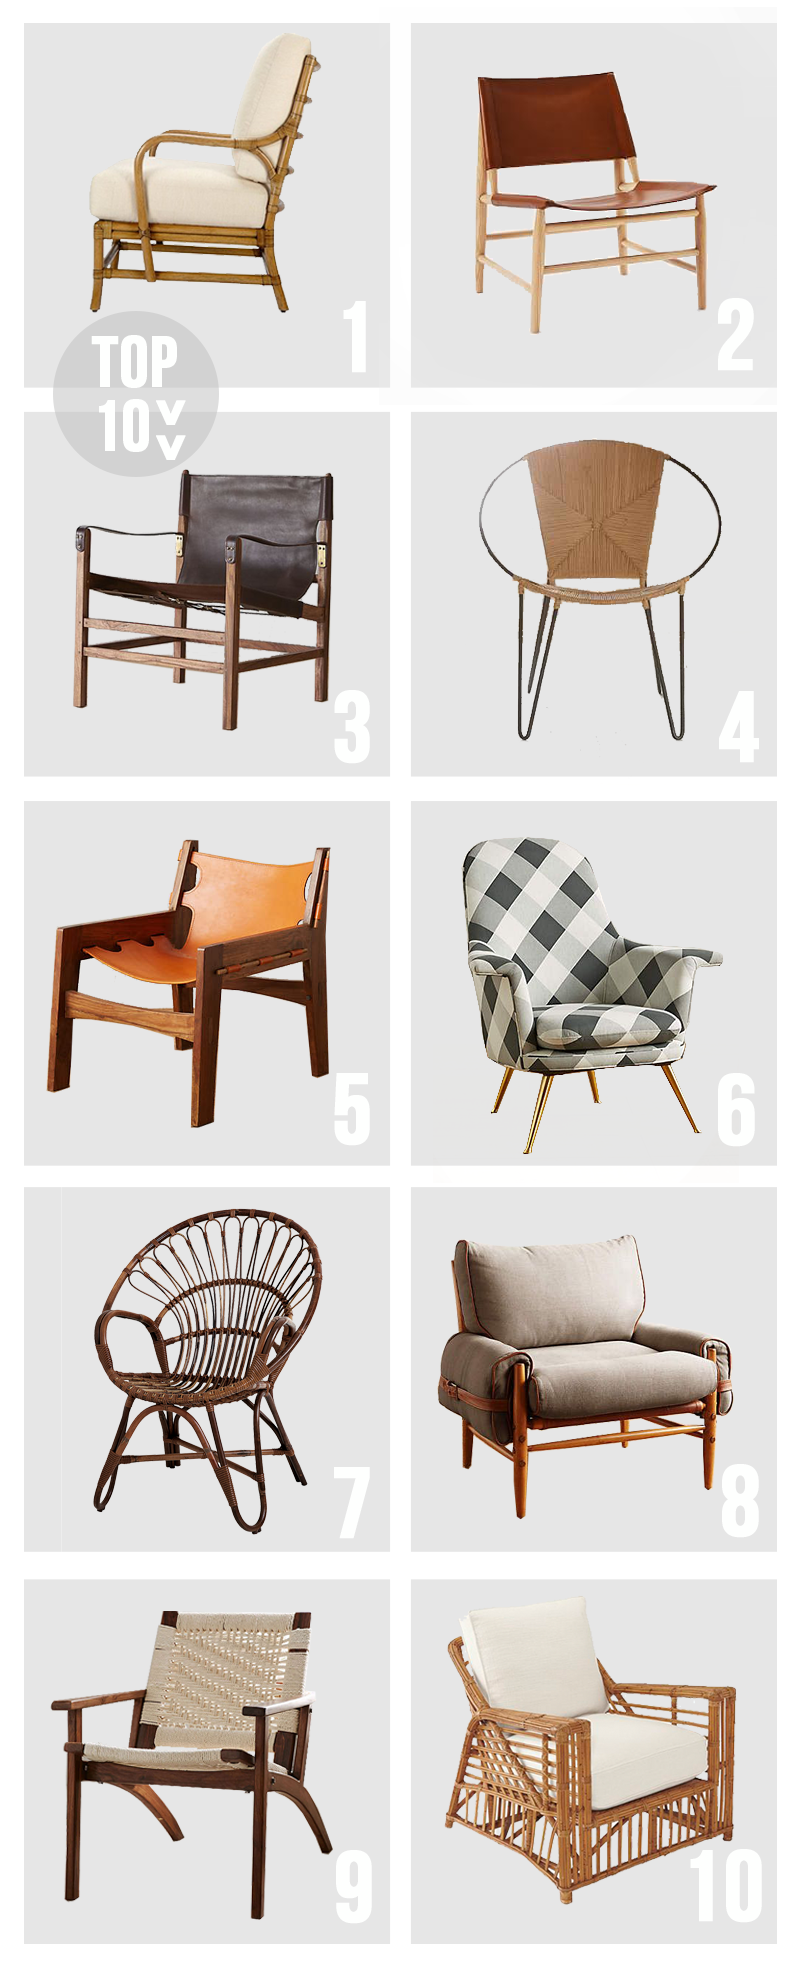 Top 10 - Accent Chairs